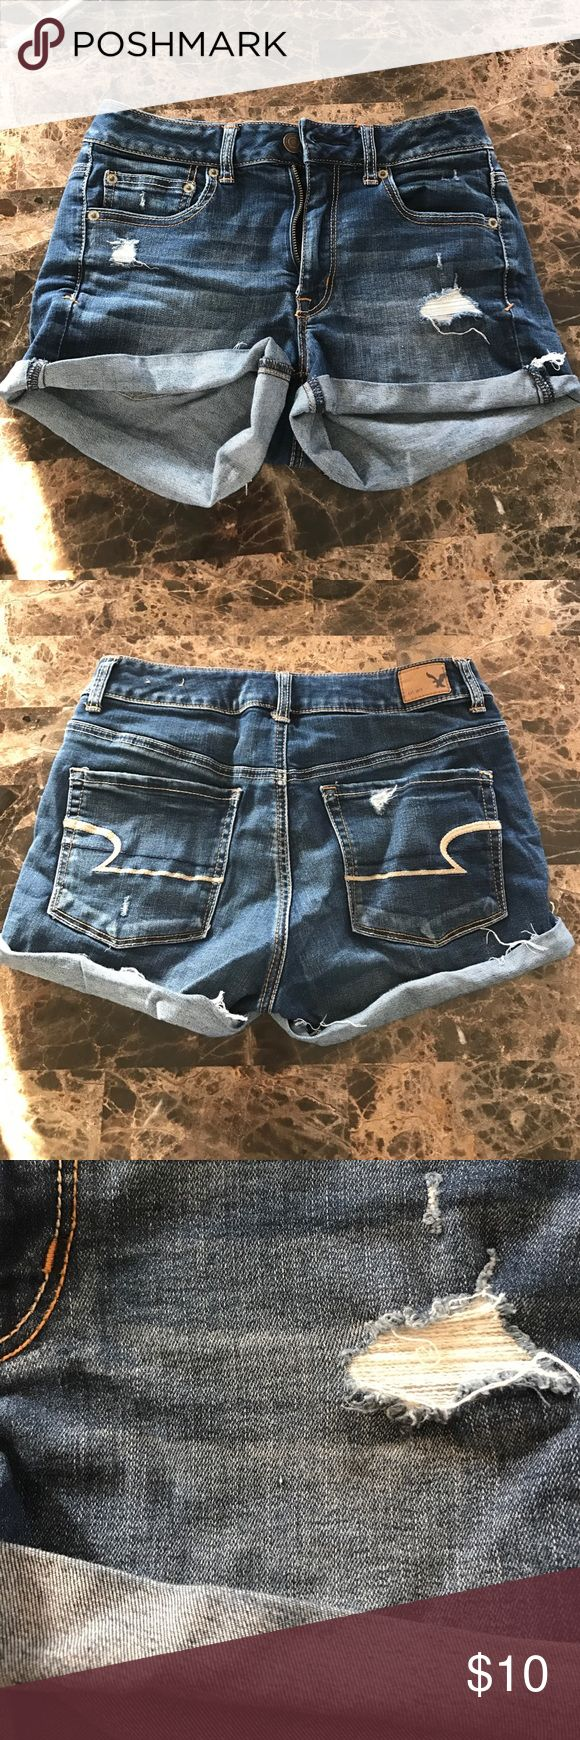 "American Eagle distressed jean shorts In great condition. Comes from a smoke free house. One little ""snag"" as you might call it. See pictures. American Eagle Outfitters Shorts Jean Shorts"